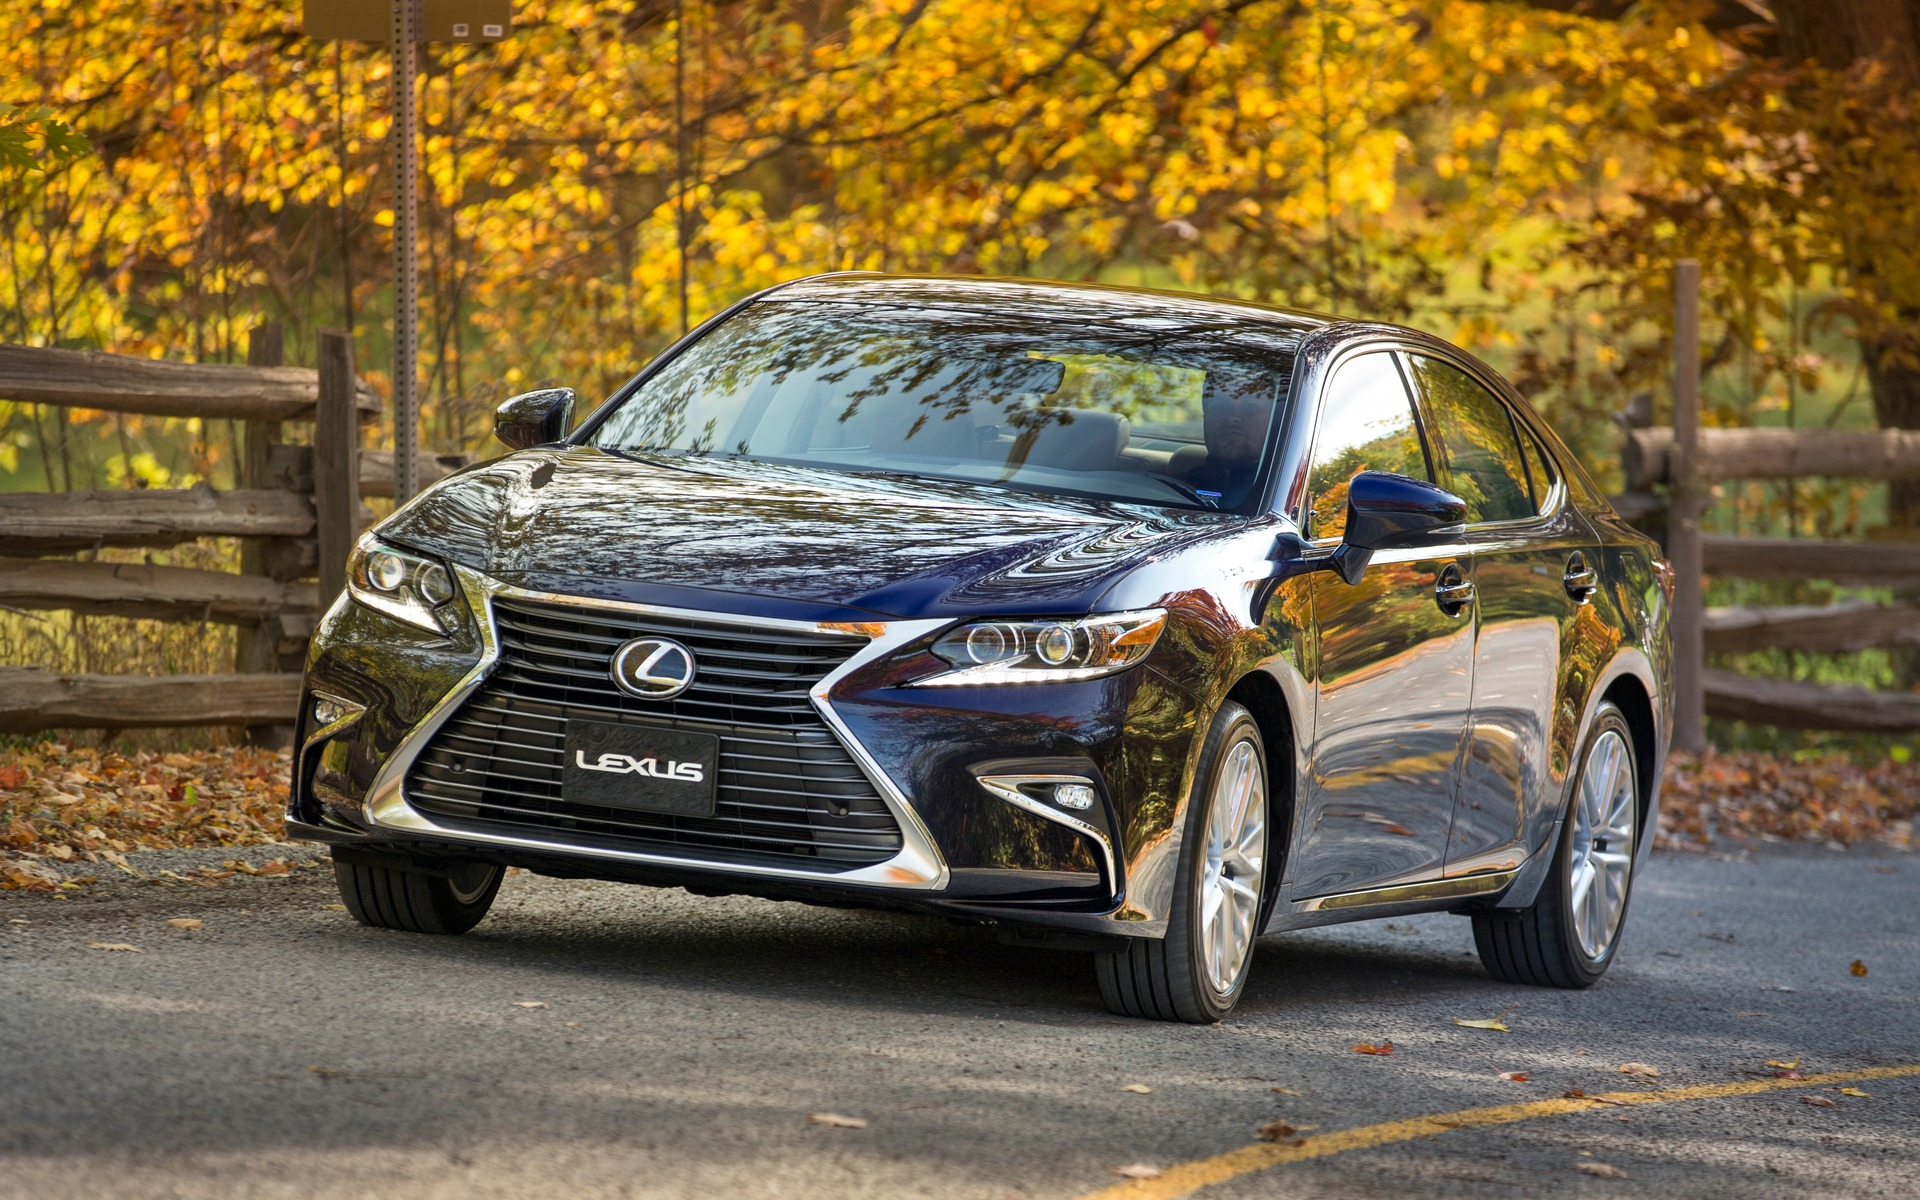 2018 lexus es 350 specifications the car guide. Black Bedroom Furniture Sets. Home Design Ideas